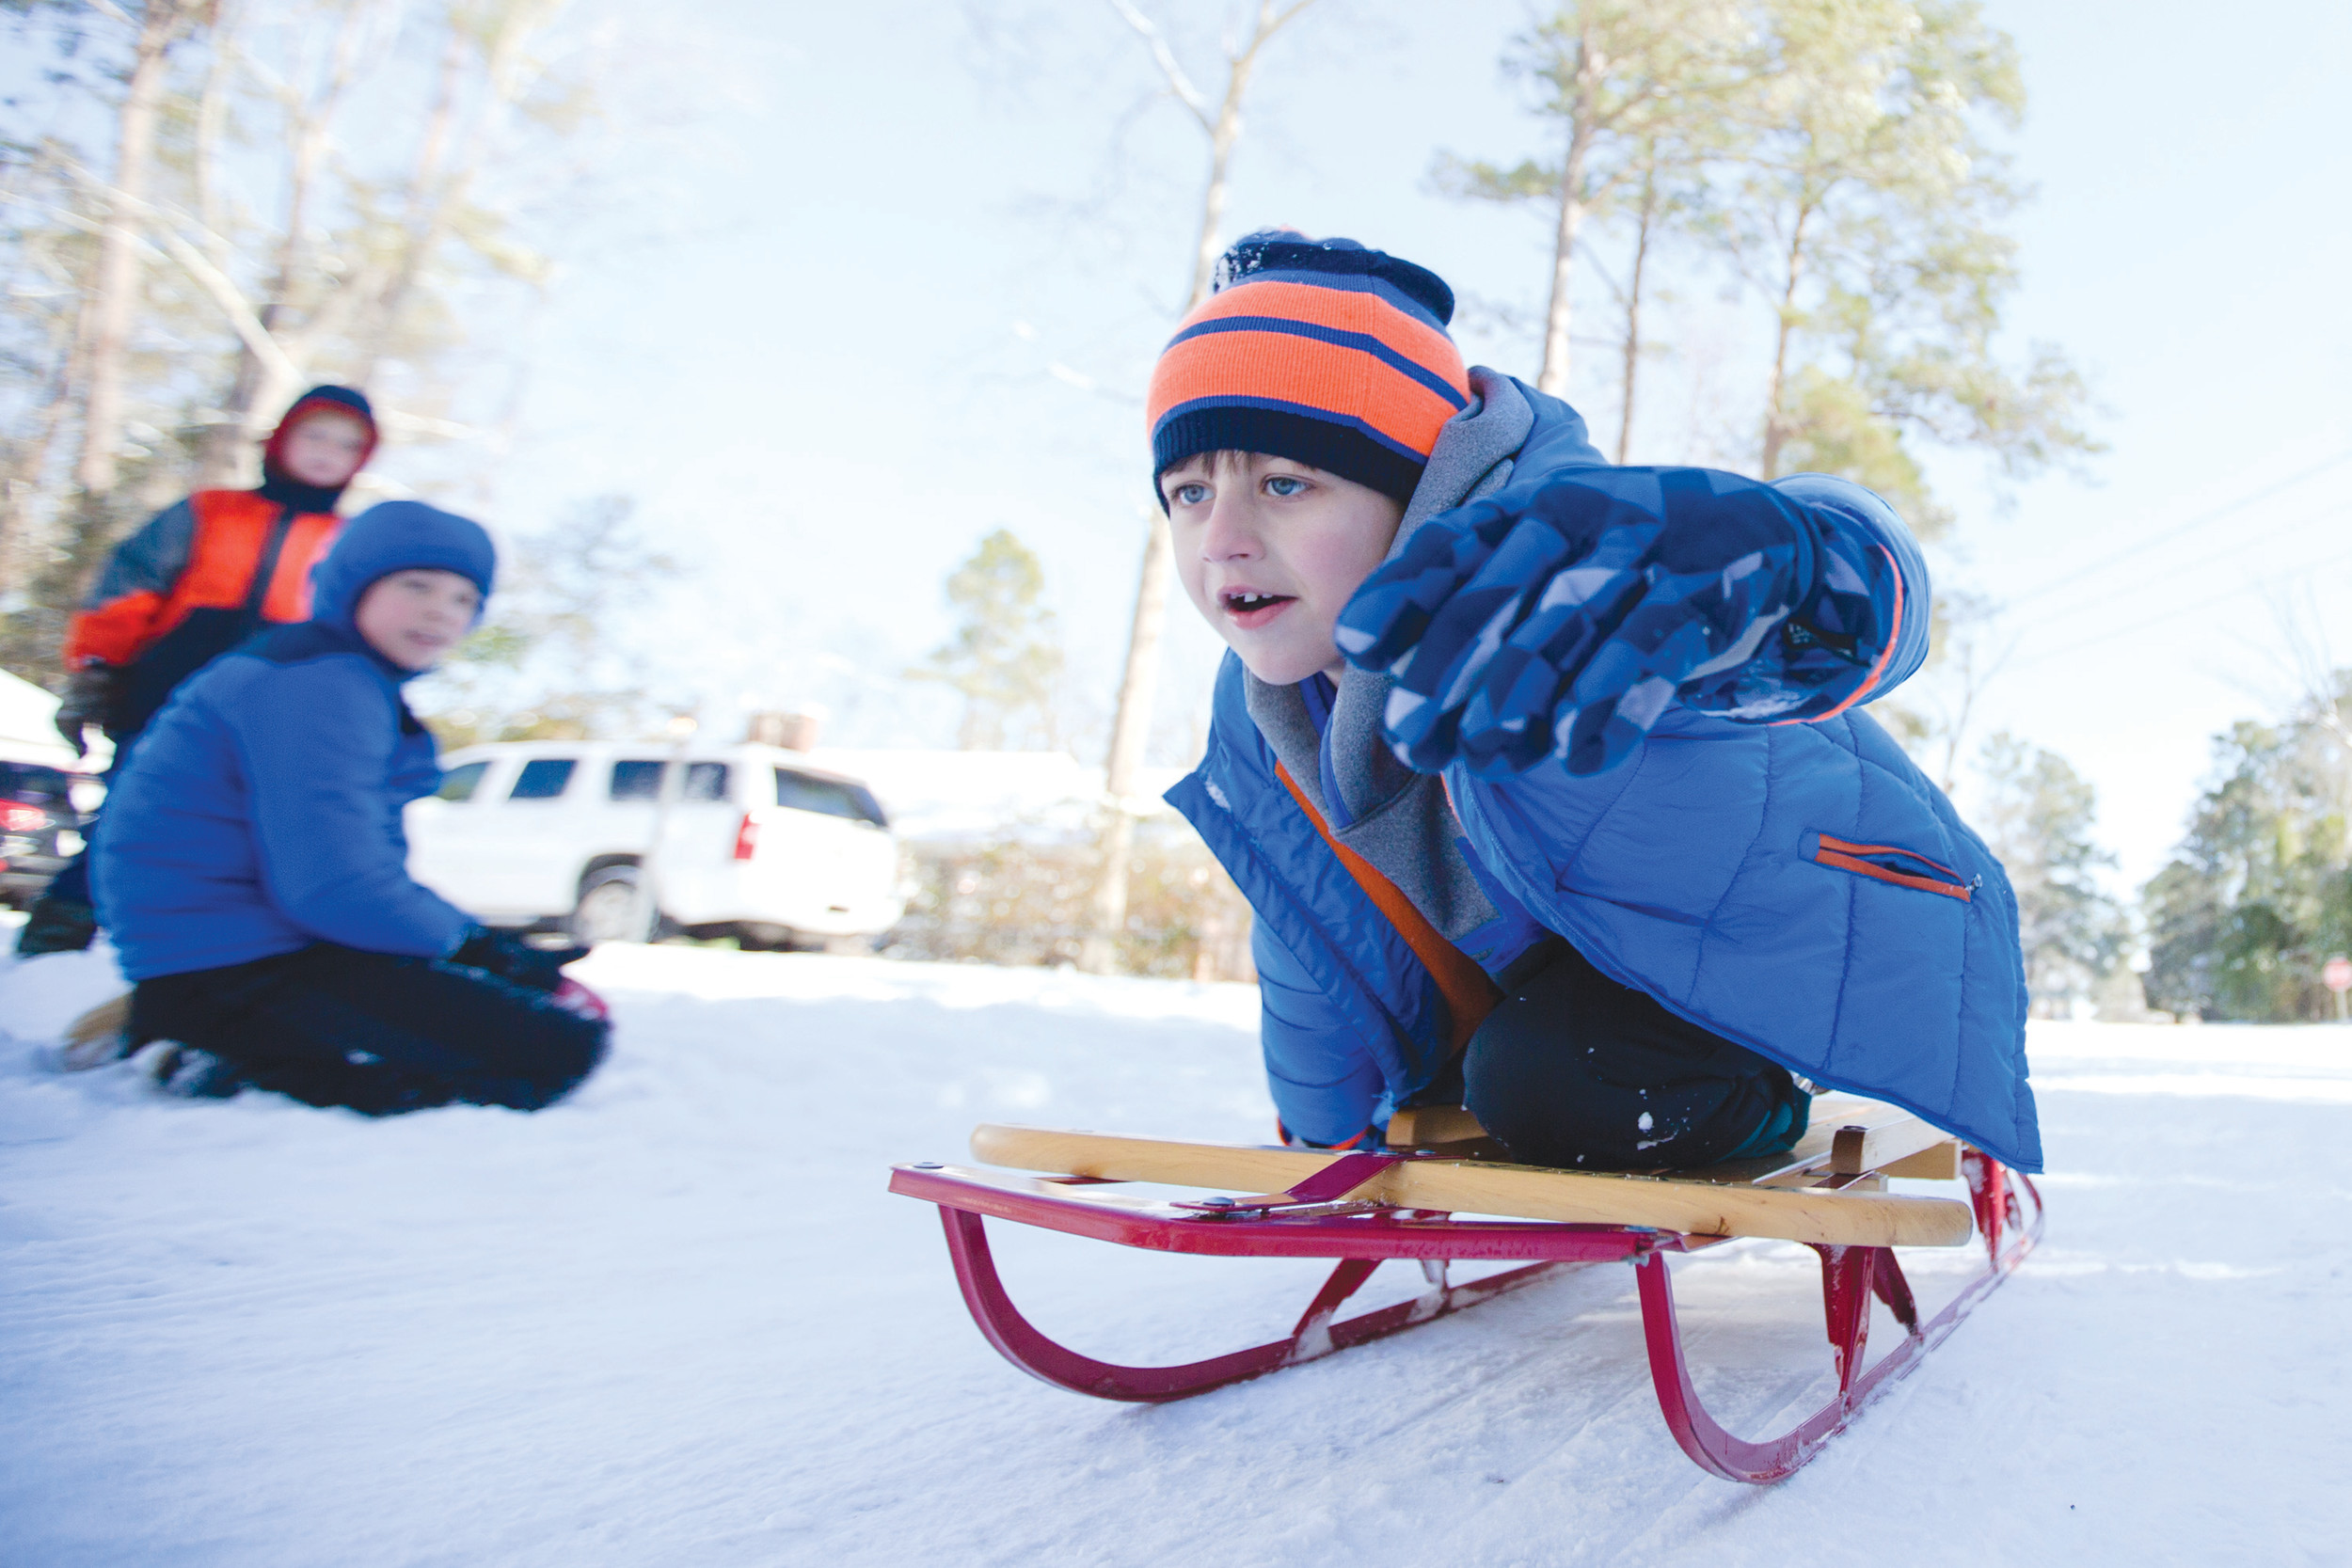 Grayson Sanders, 8, sleds past some friends down an icy road in Sumter.